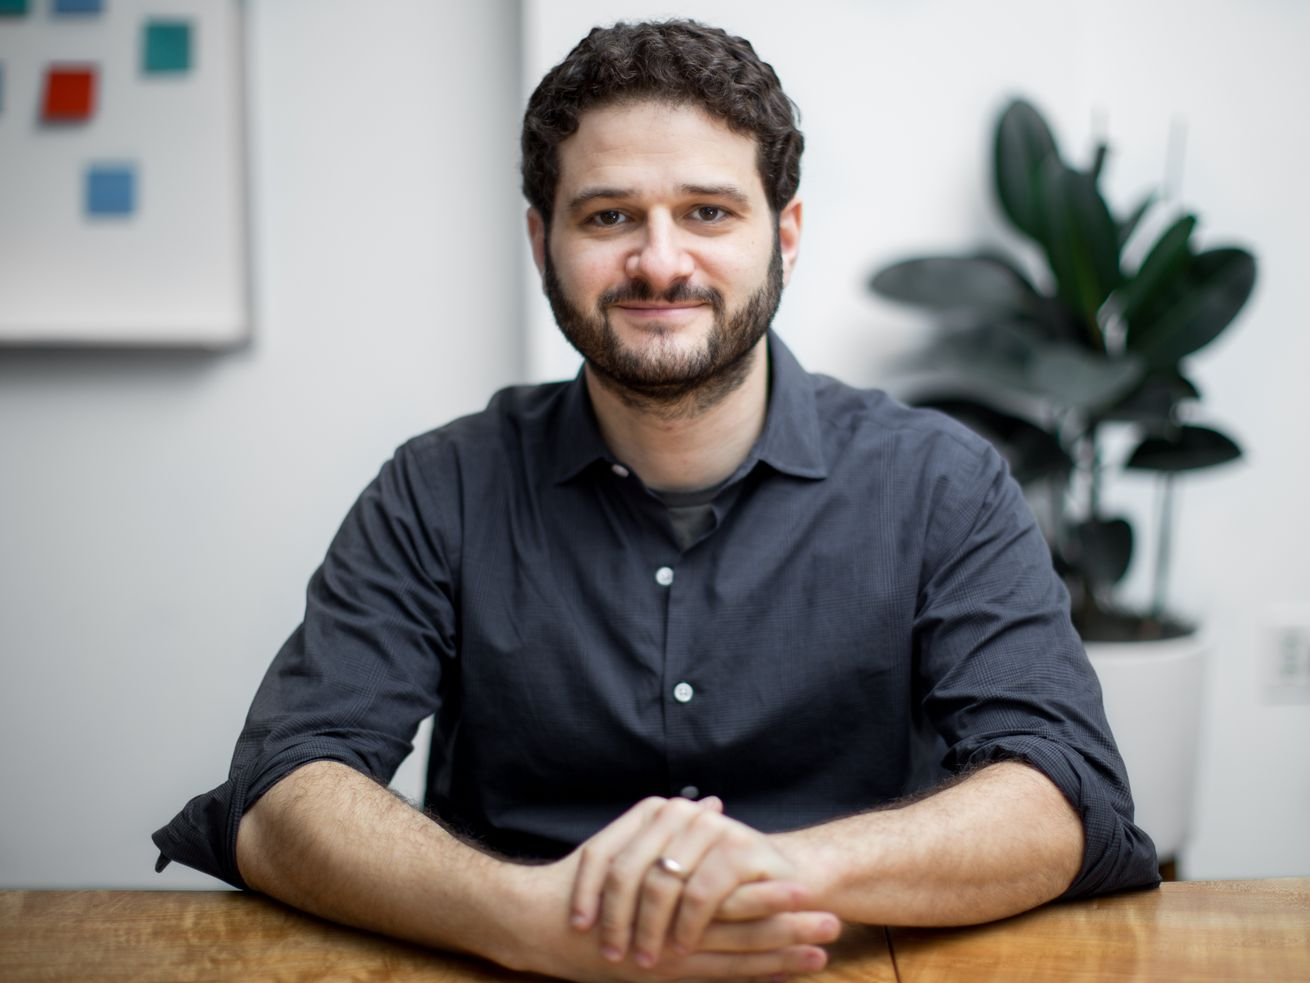 Dustin Moskovitz poses with his hands clasped on a table.